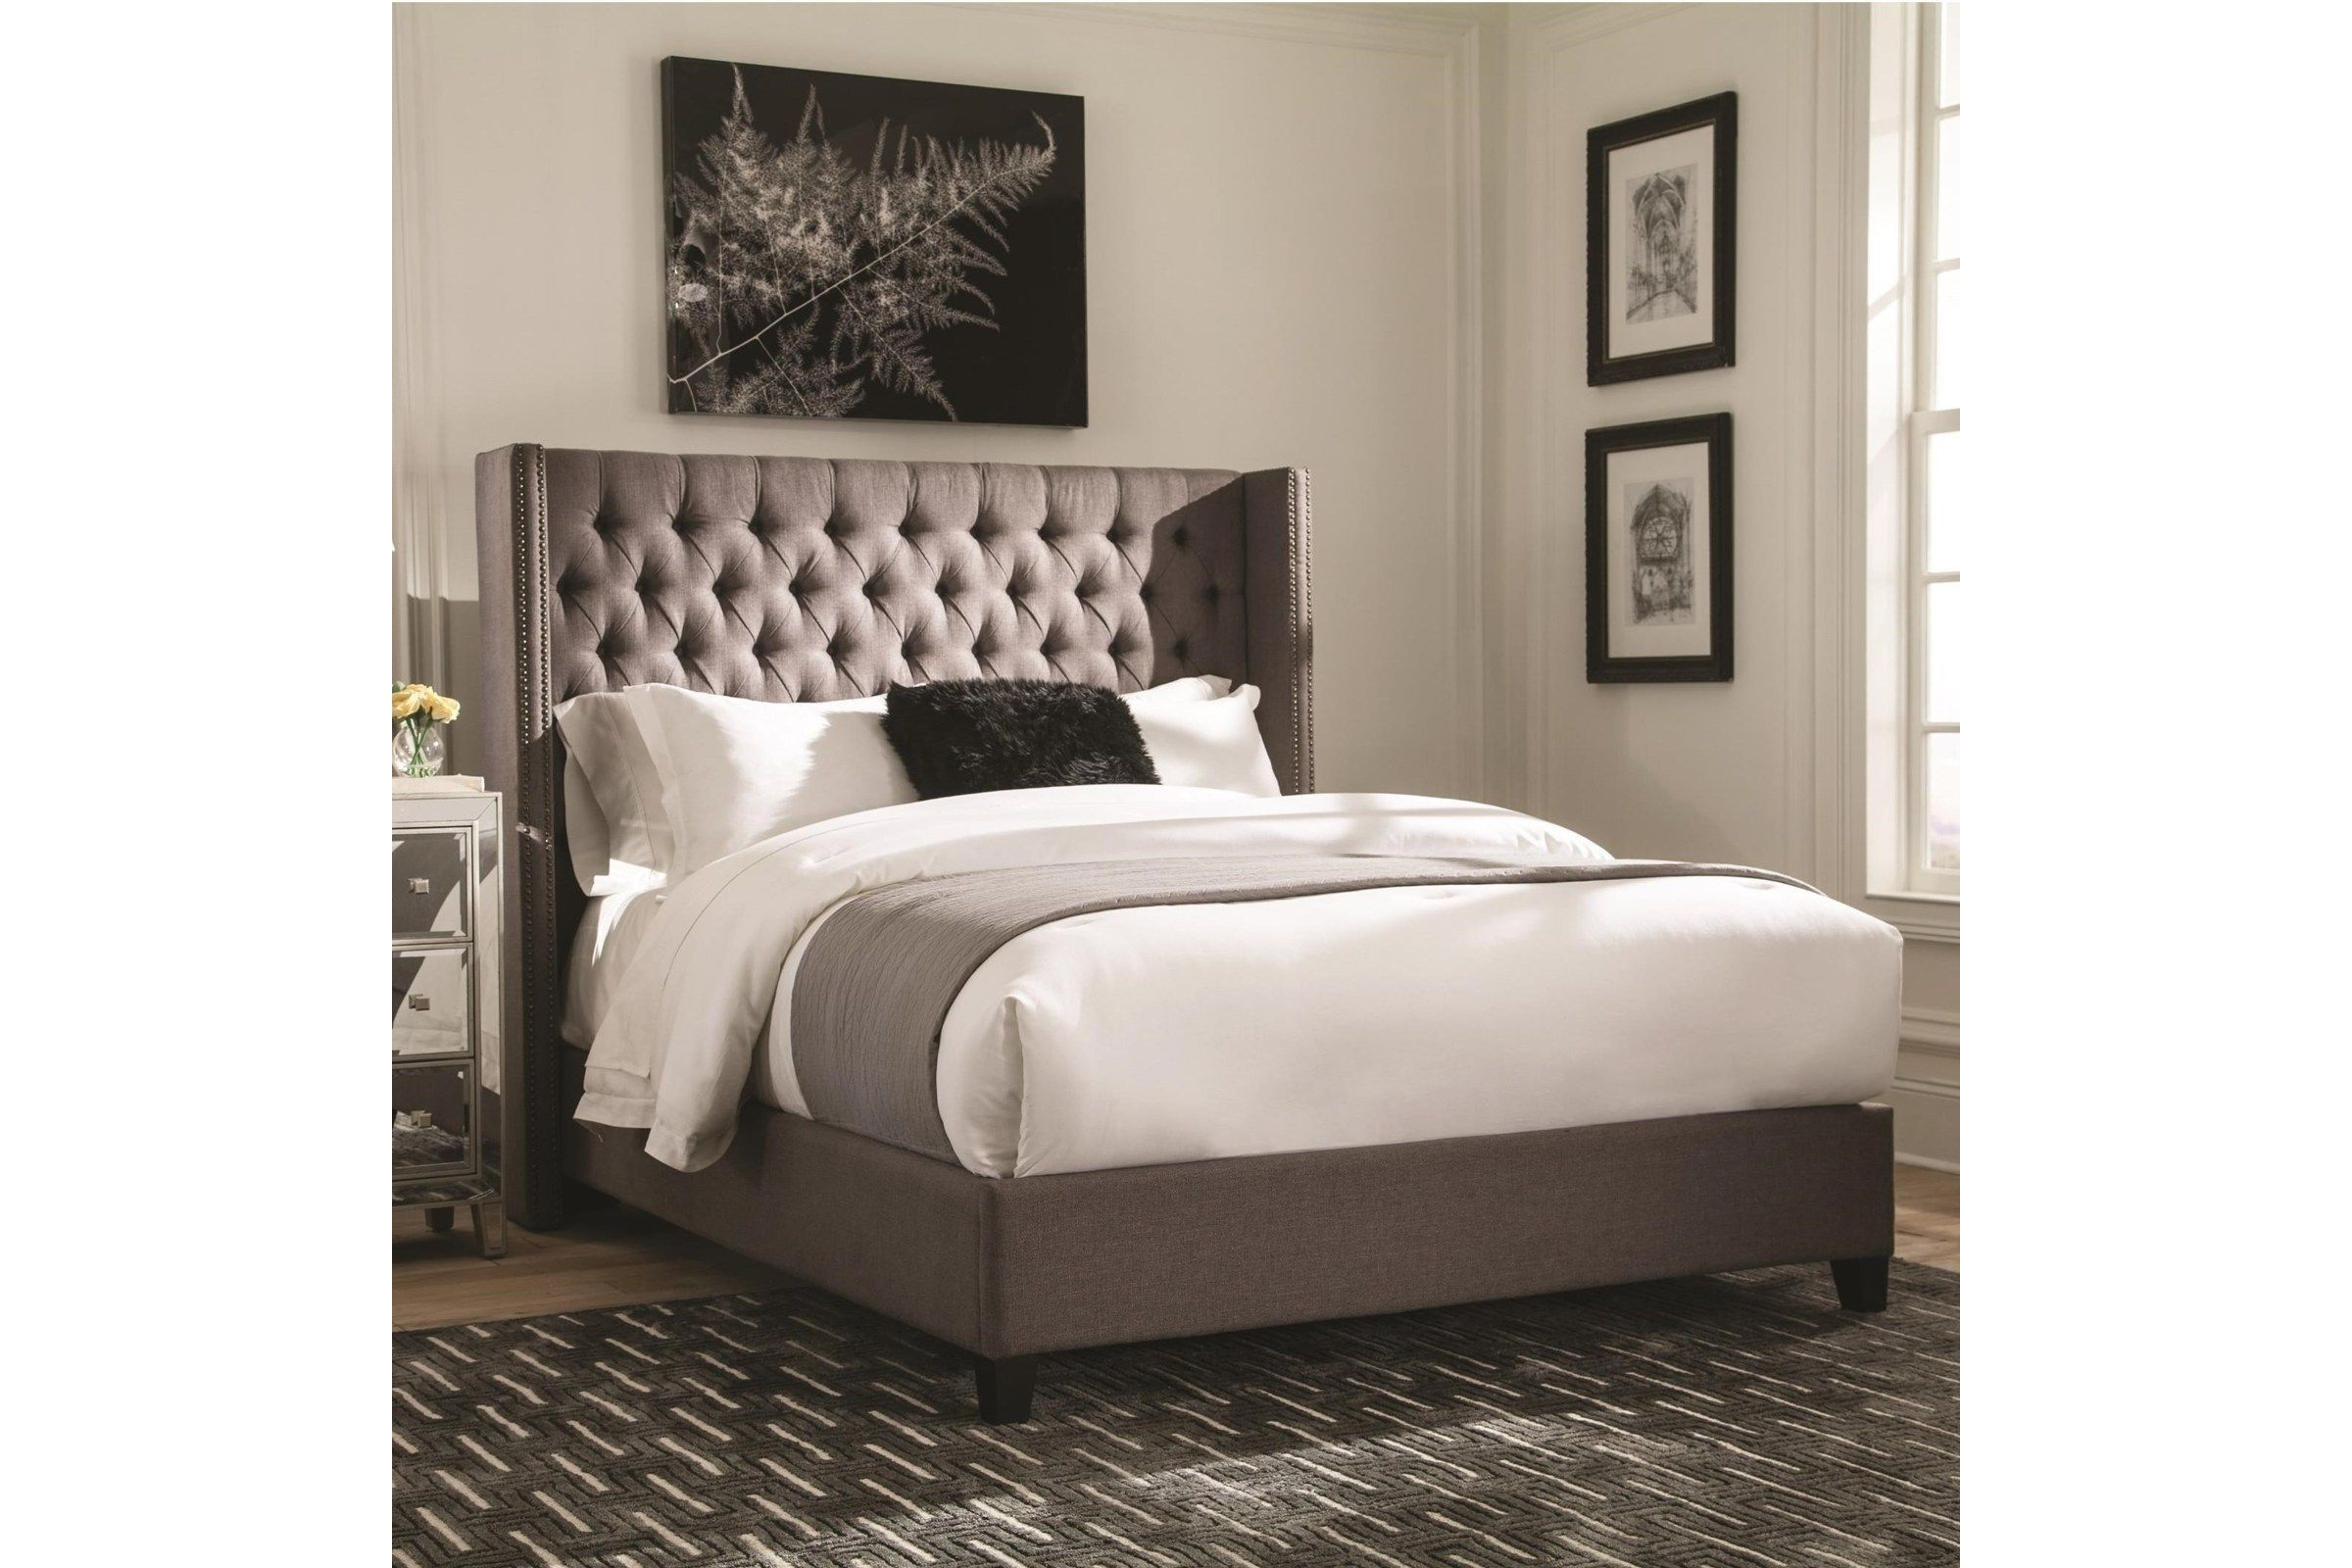 Scott Living Benicia Grey Upholstered Twin Bed Grey Upholstered